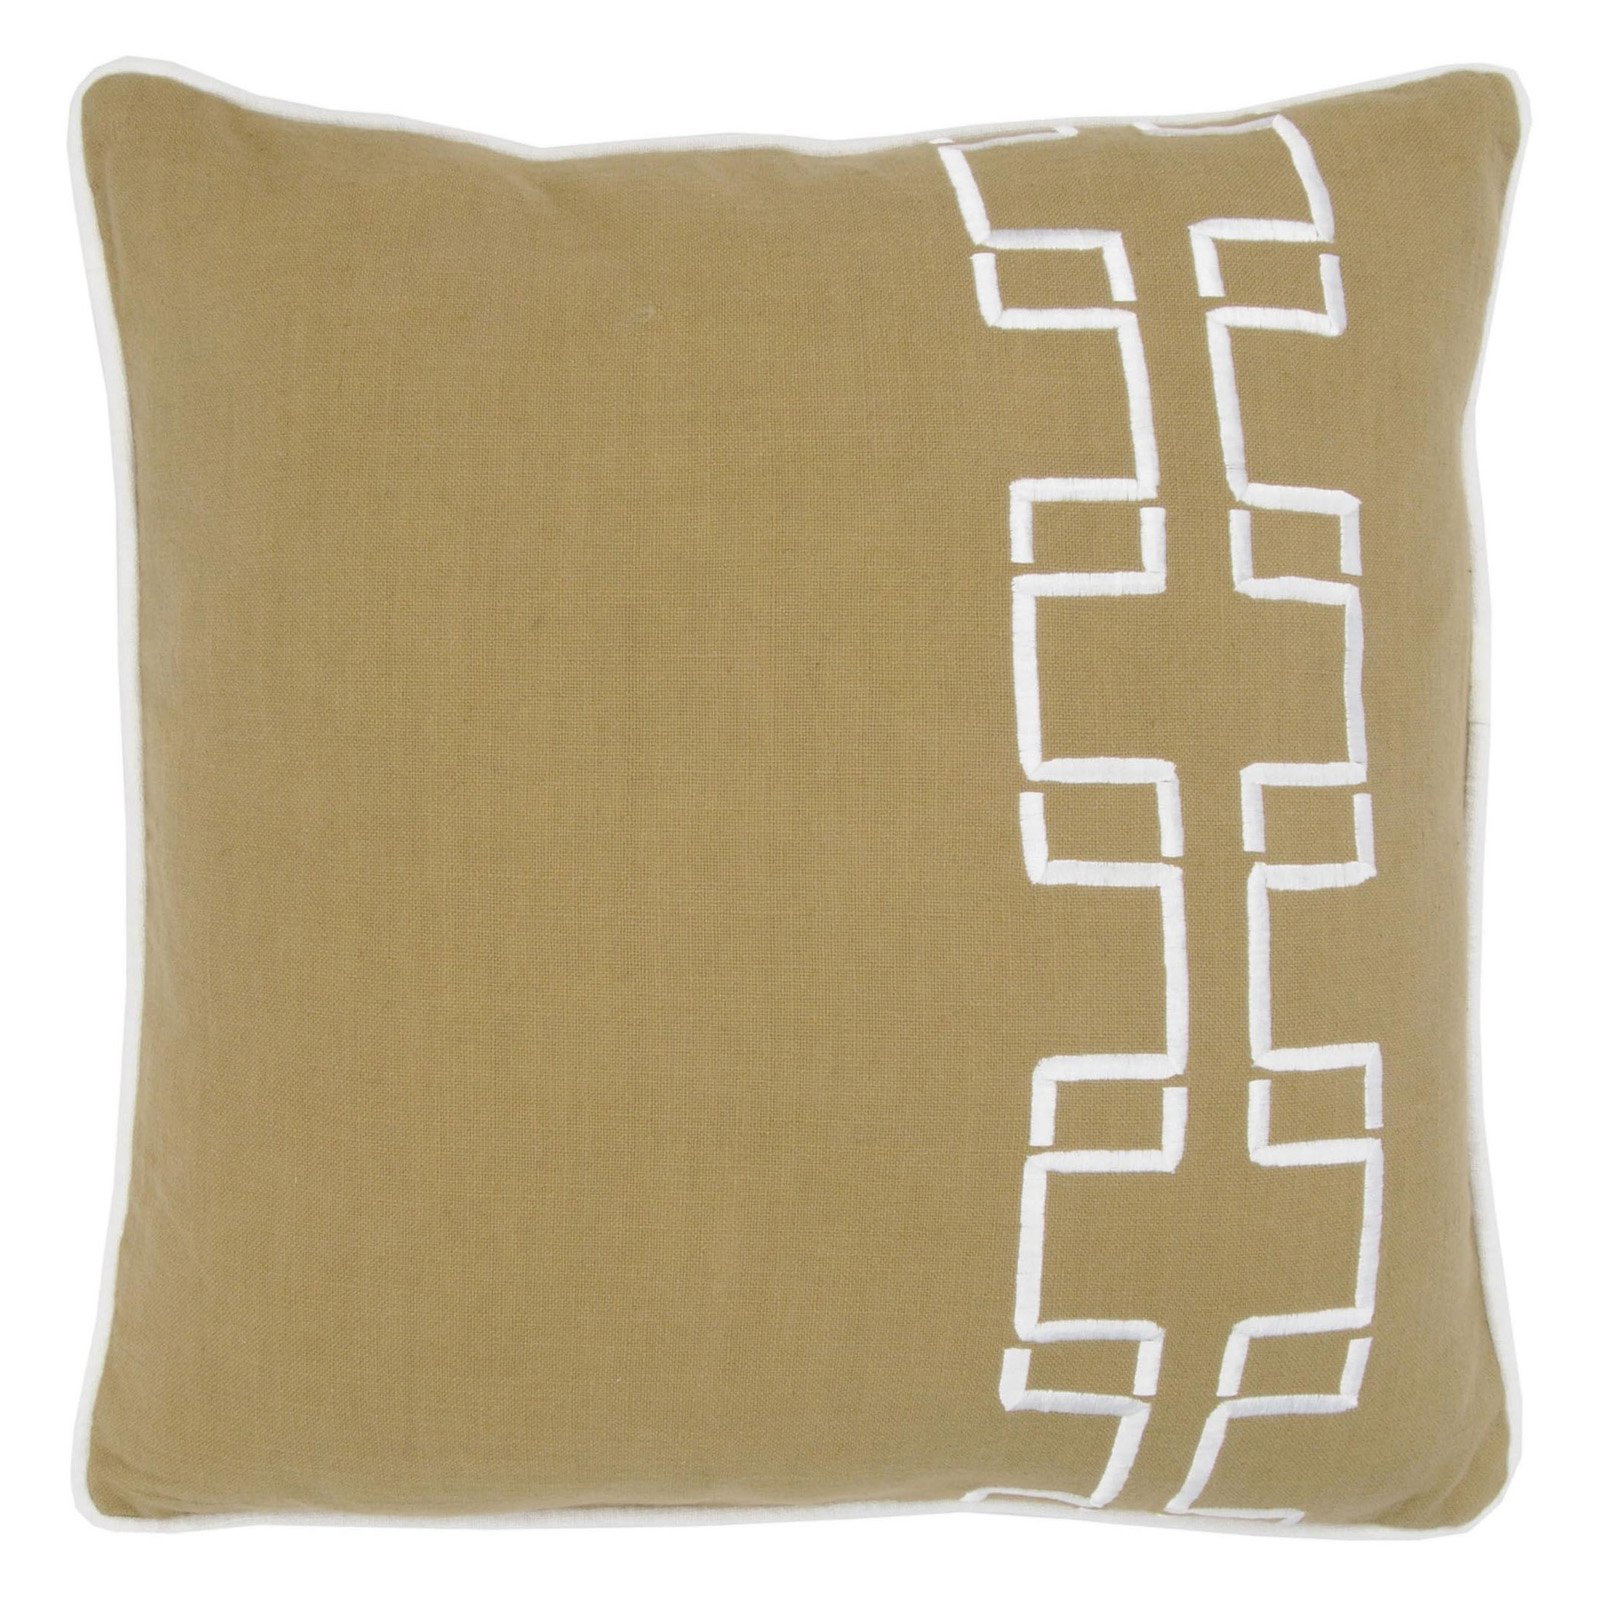 "Rizzy home T03562 18"" x 18"" sage cotton fabric decorative filled pillow"